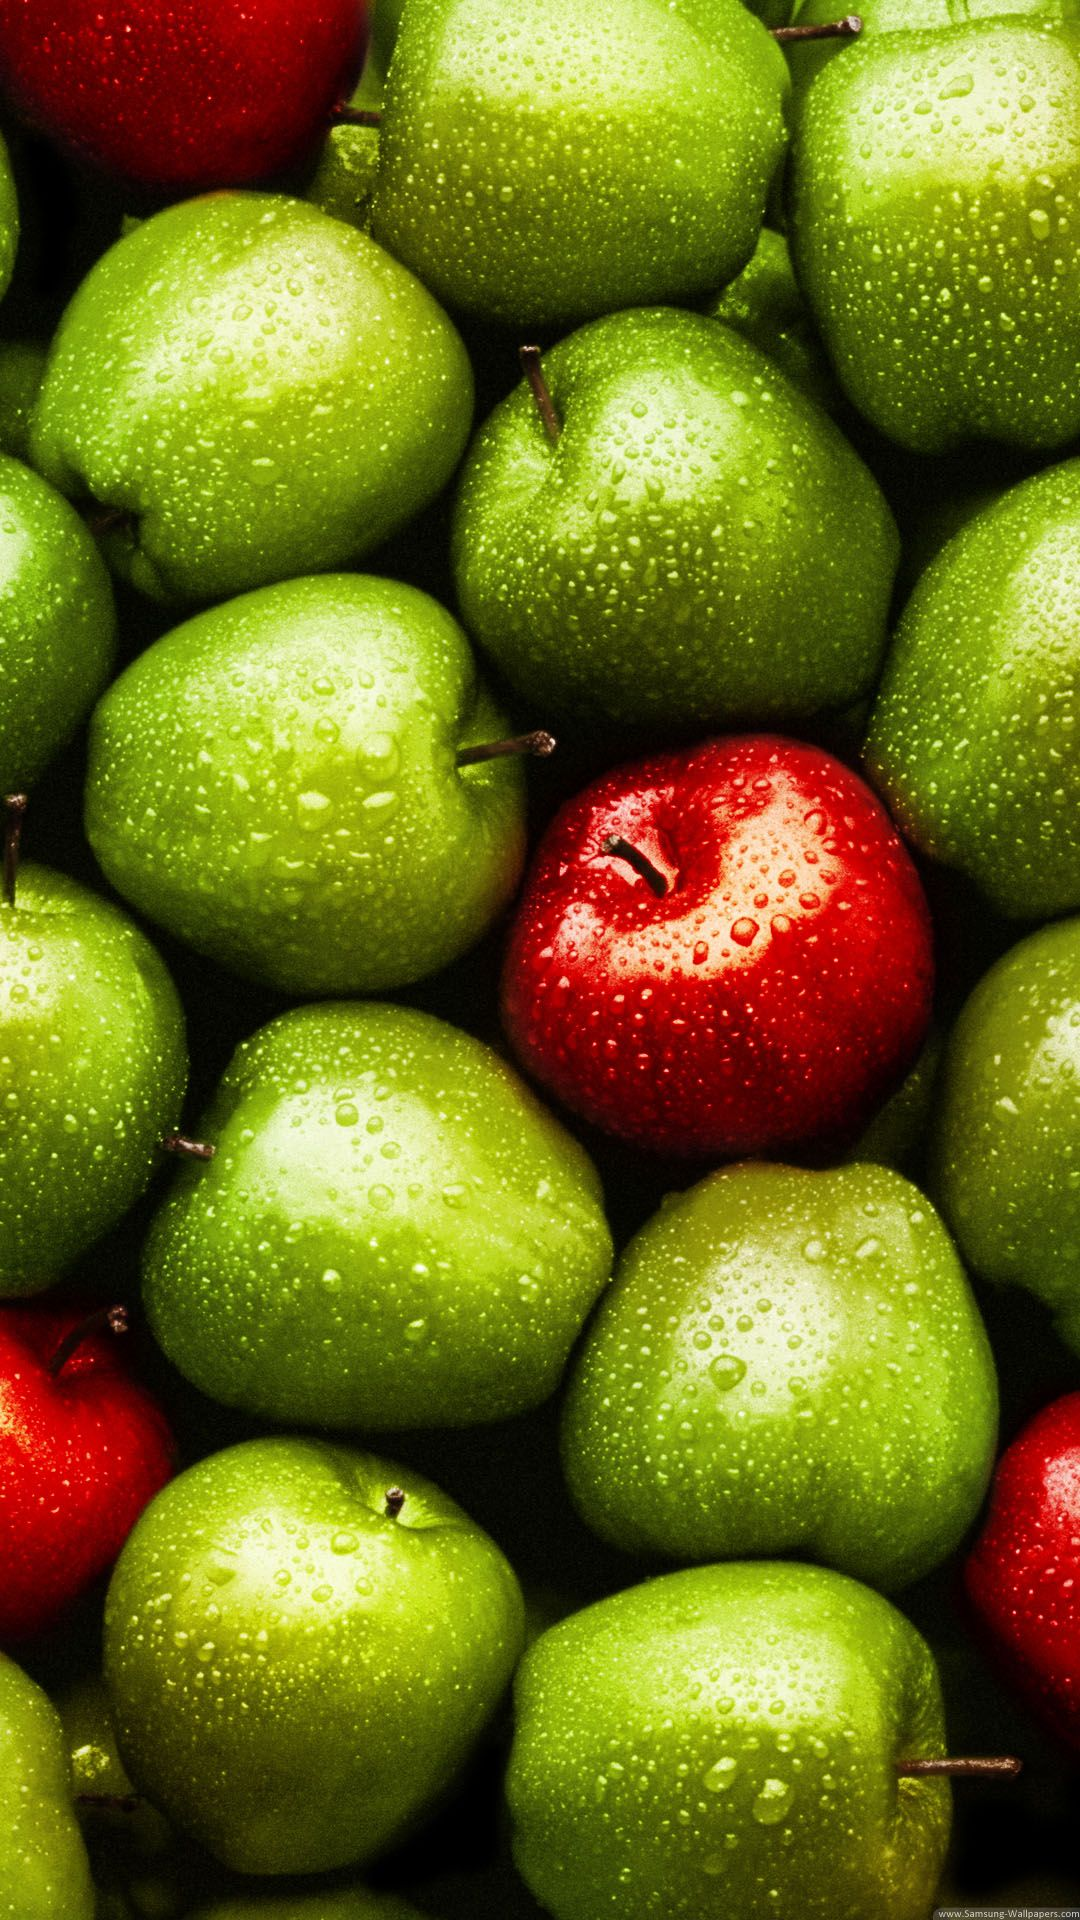 download green red apples iphone 6 plus hd wallpaper | iphone